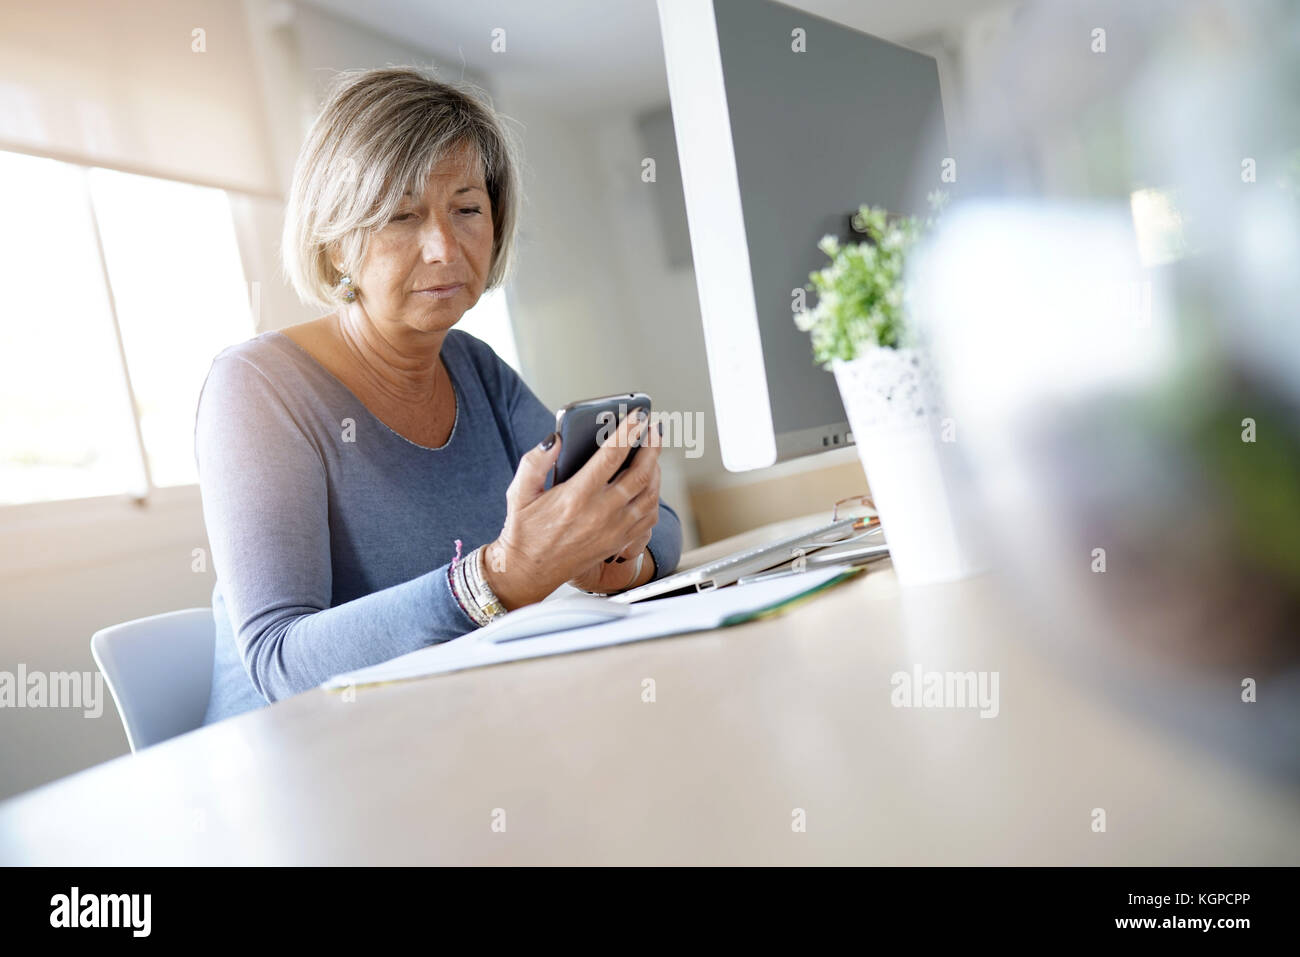 Senior woman working in office using smartphone - Stock Image